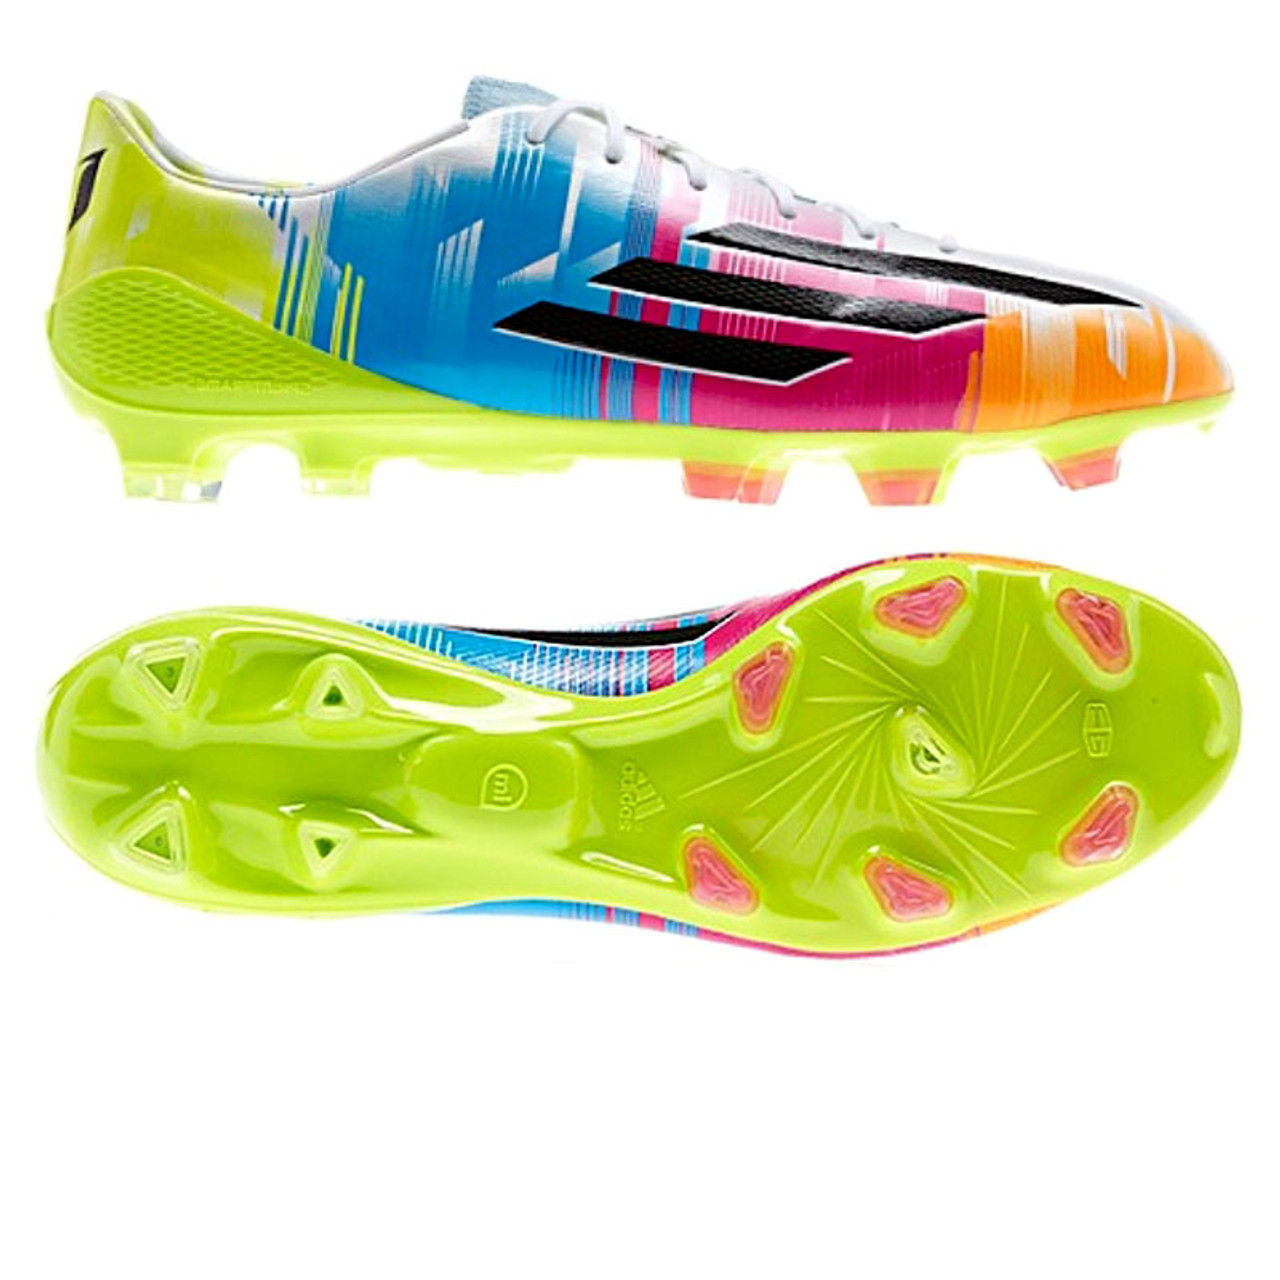 newest f8d18 bb2d8 ADIDAS F50 ADIZERO FG MESSI multi color - Soccer Plus